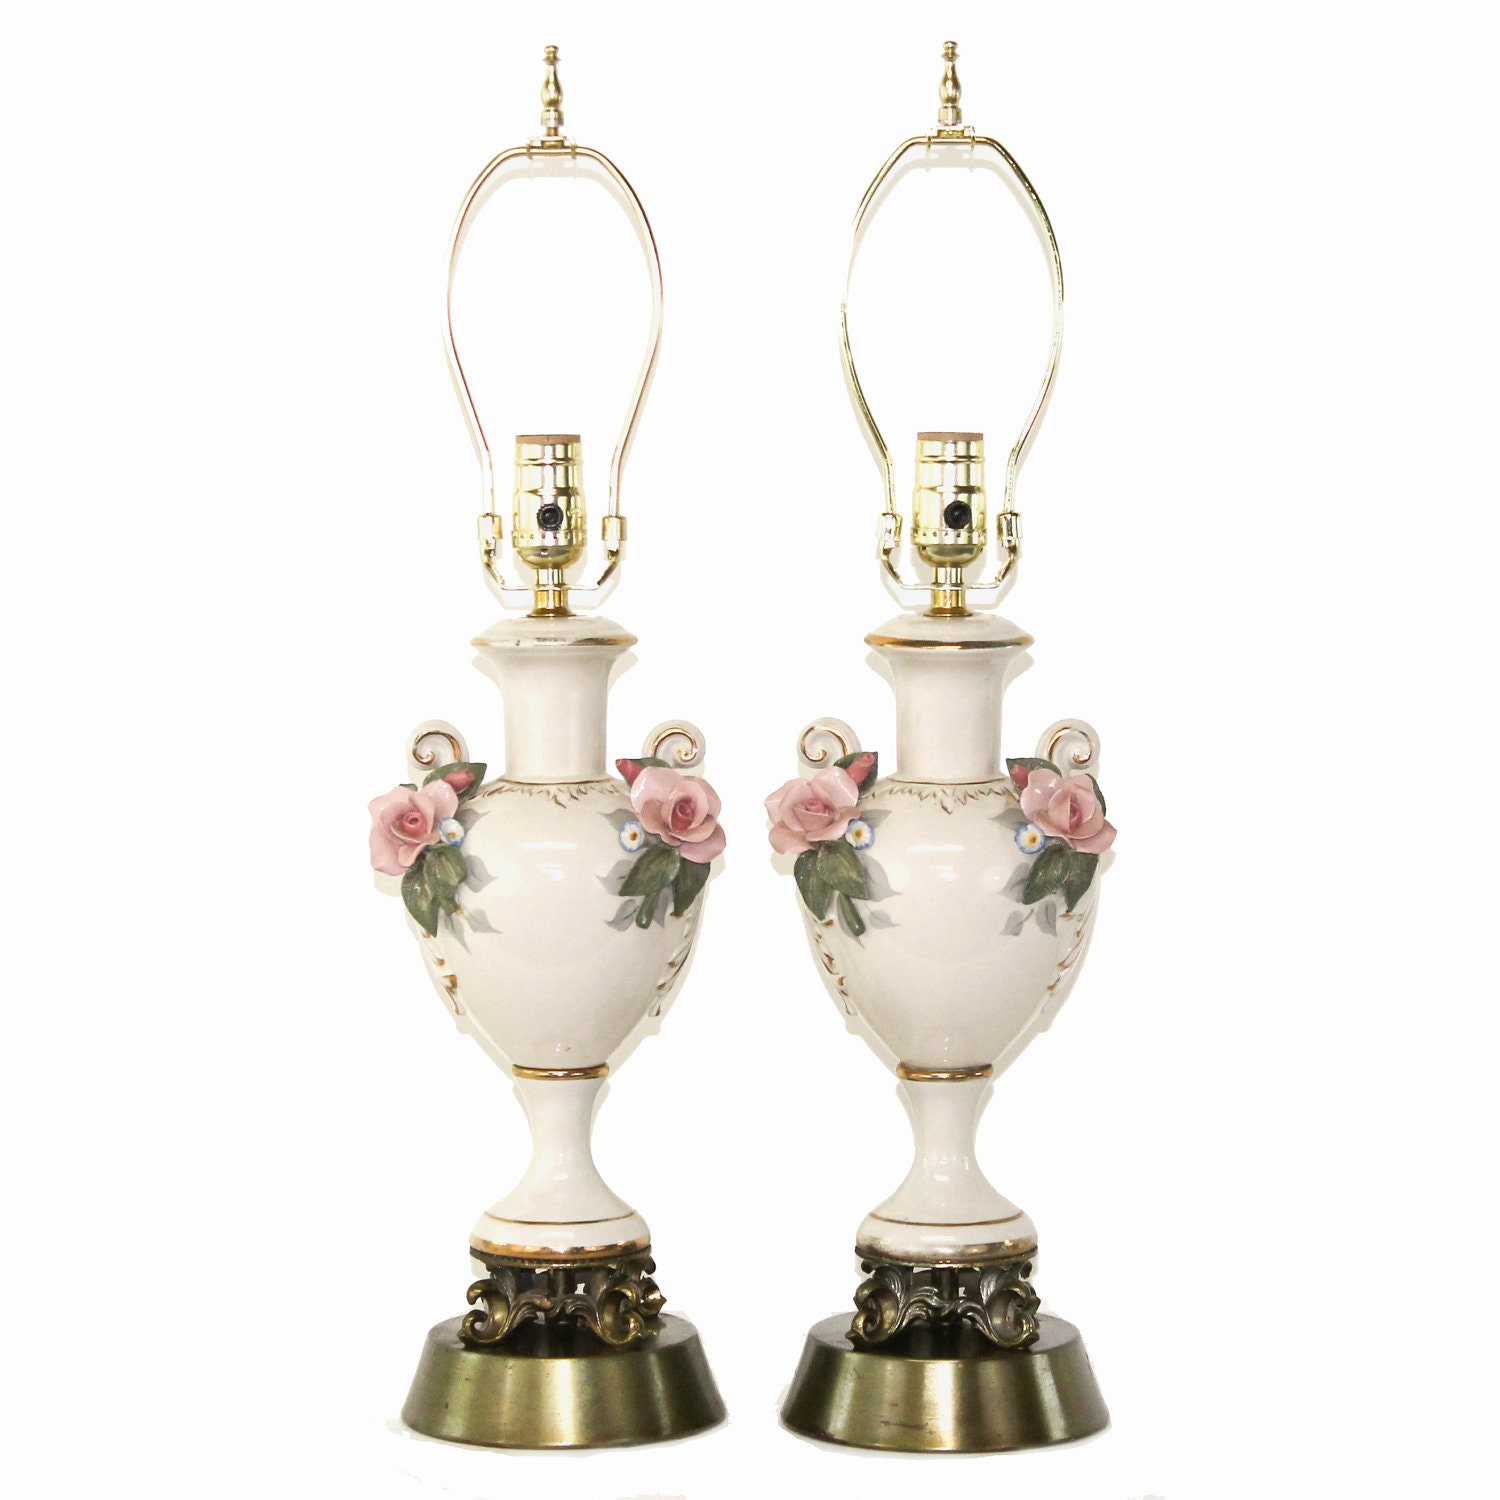 PAIR Antique Hand Painted Porcelain Lamps By Cordey Cottage